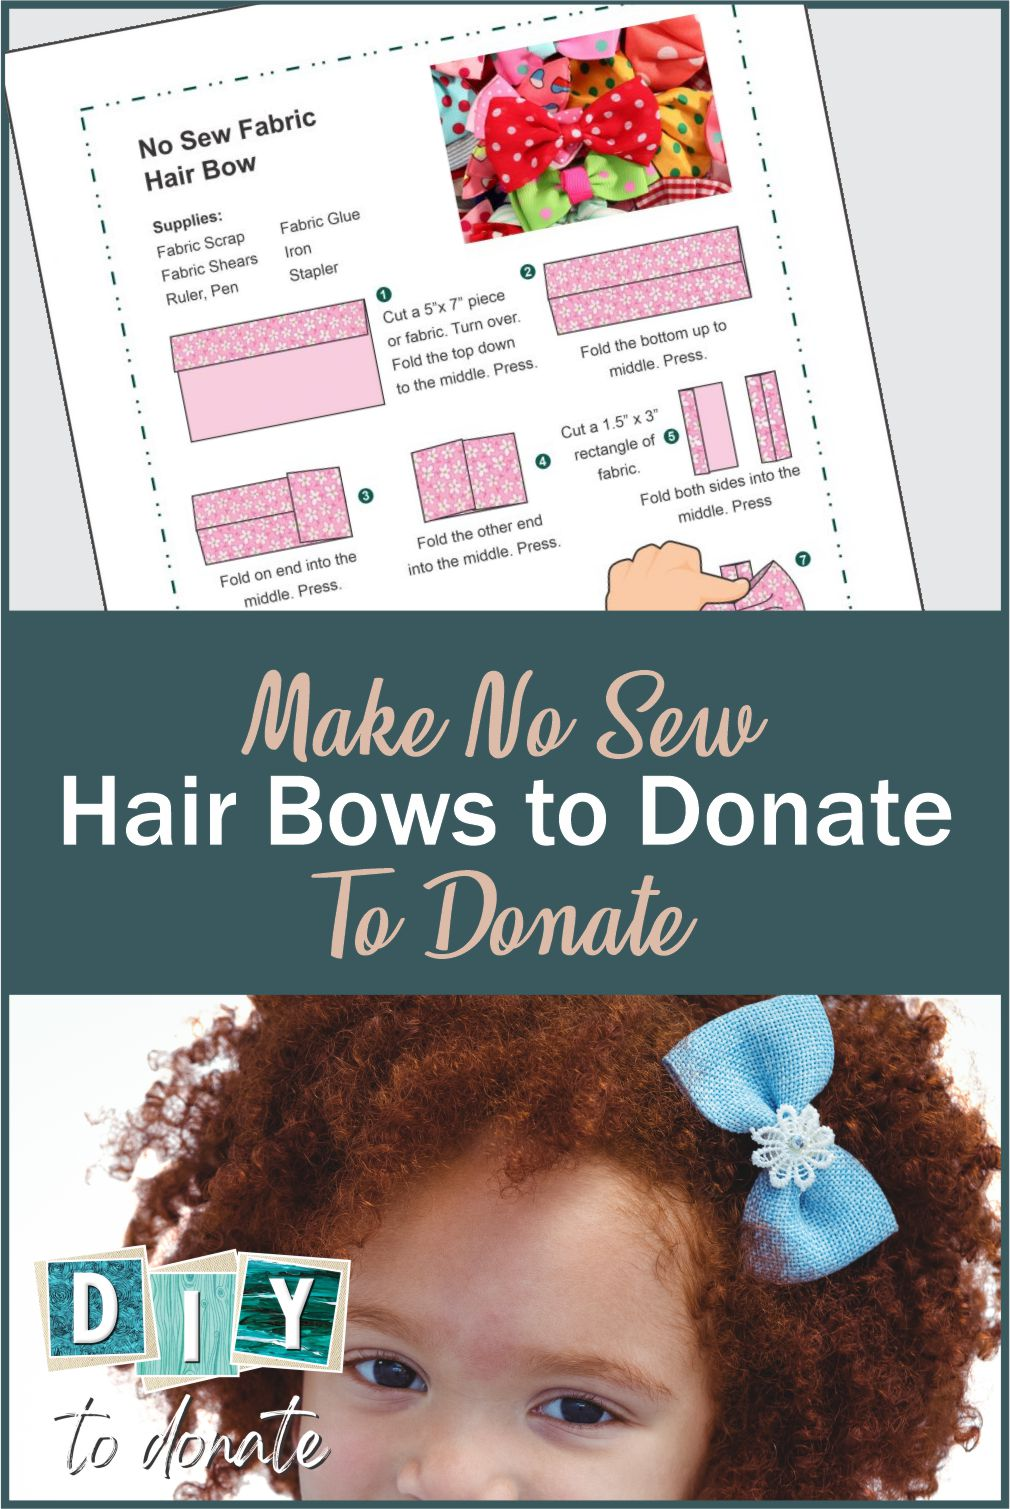 Making no-sew hair bows is quick, fun, and can make little girls happy. We have a free printable instruction guide and information about where to donate them! #nosew #nosewhairbows #hairbows #bows #hair #hairdo #freeprintable #diytodonate #diy #donate #giveback #helper #give